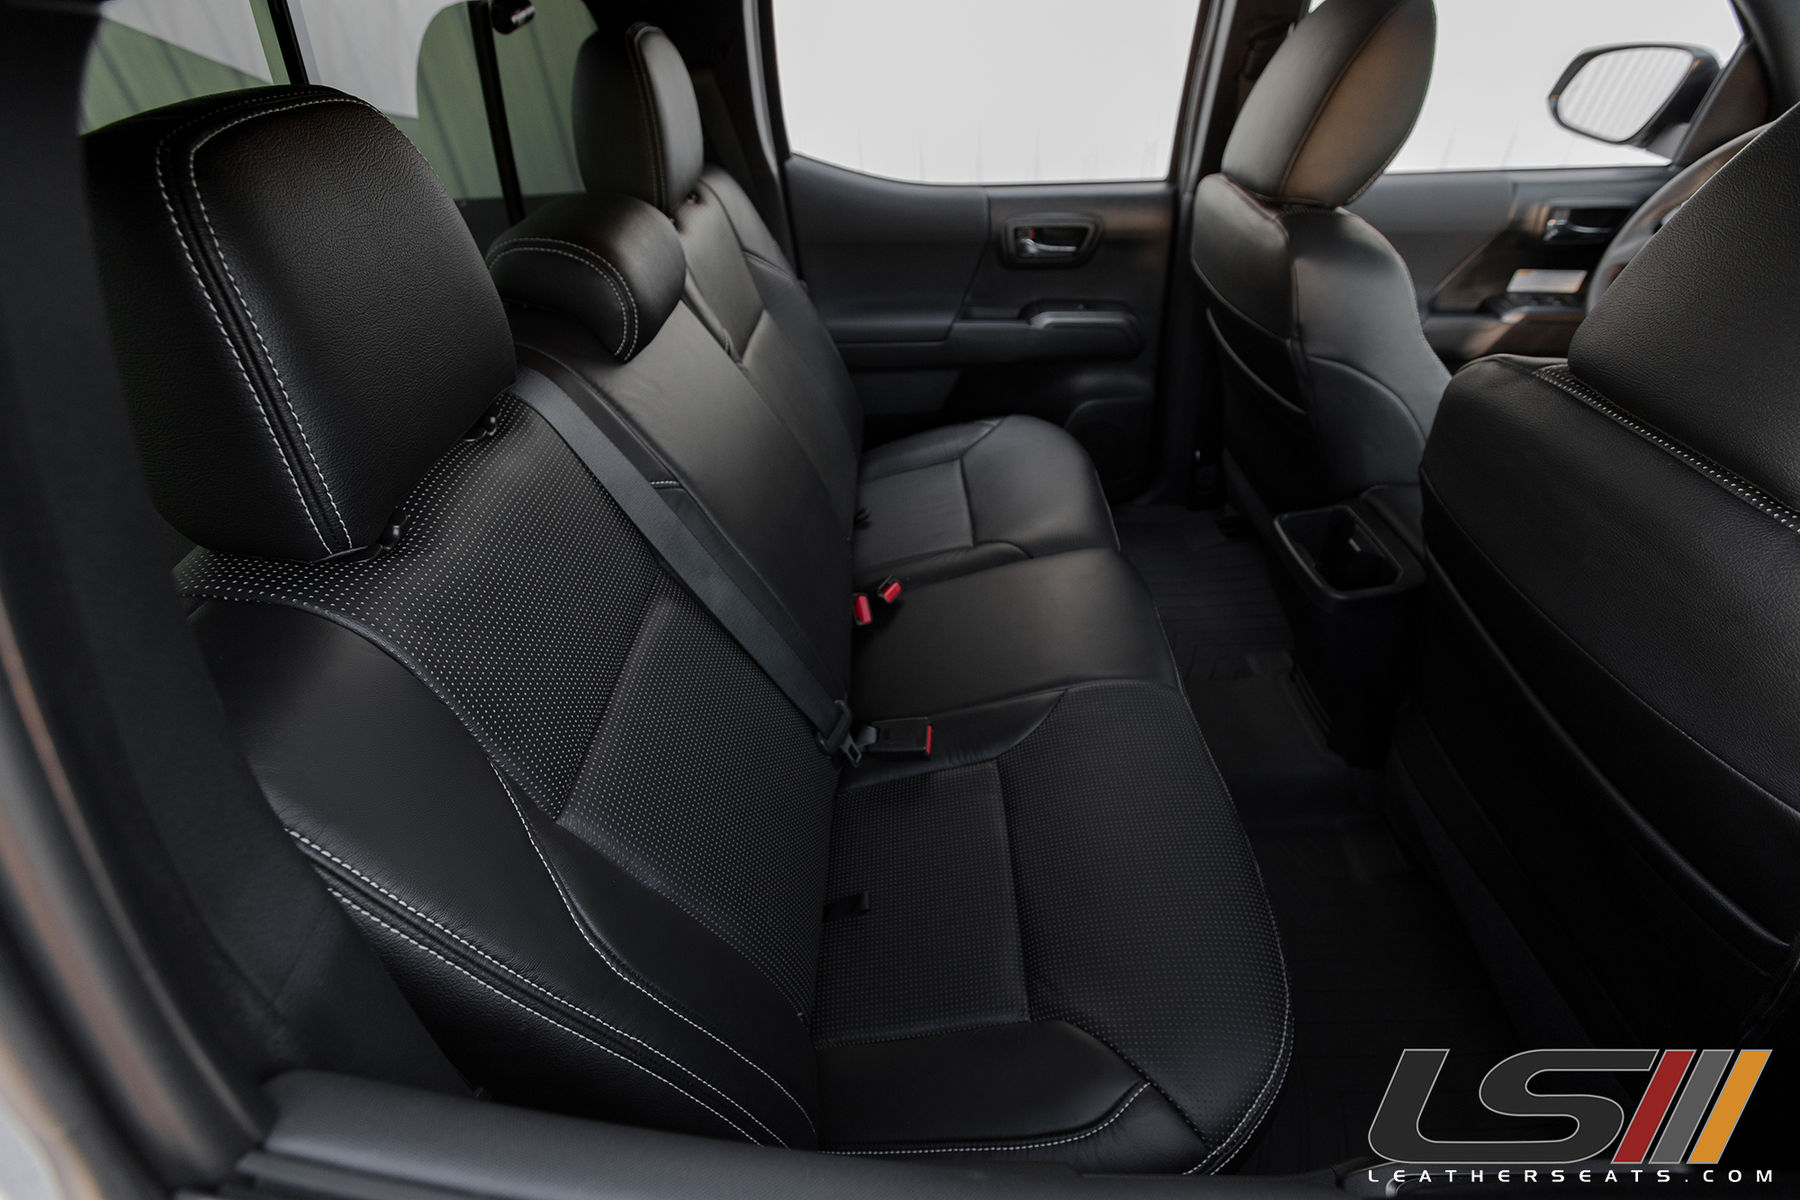 2017 Toyota Tacoma Interior By Leatherseats